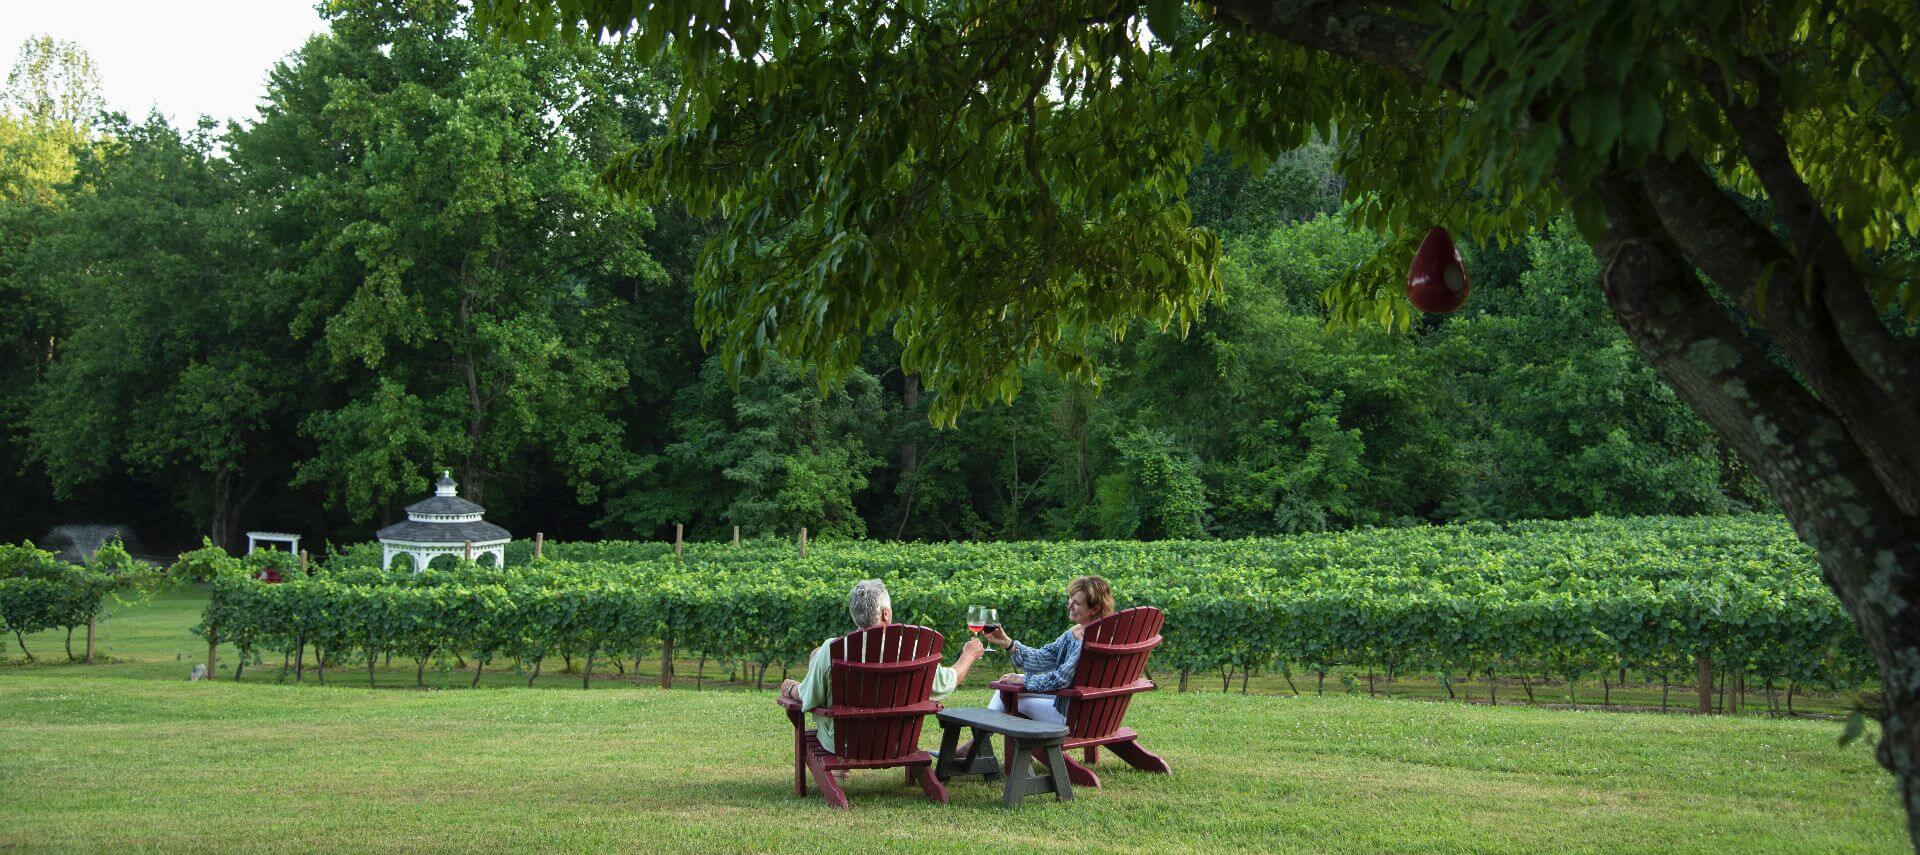 Couple sitting on brown Adirondack chairs on grassy area toasting wine glasses near vineyard